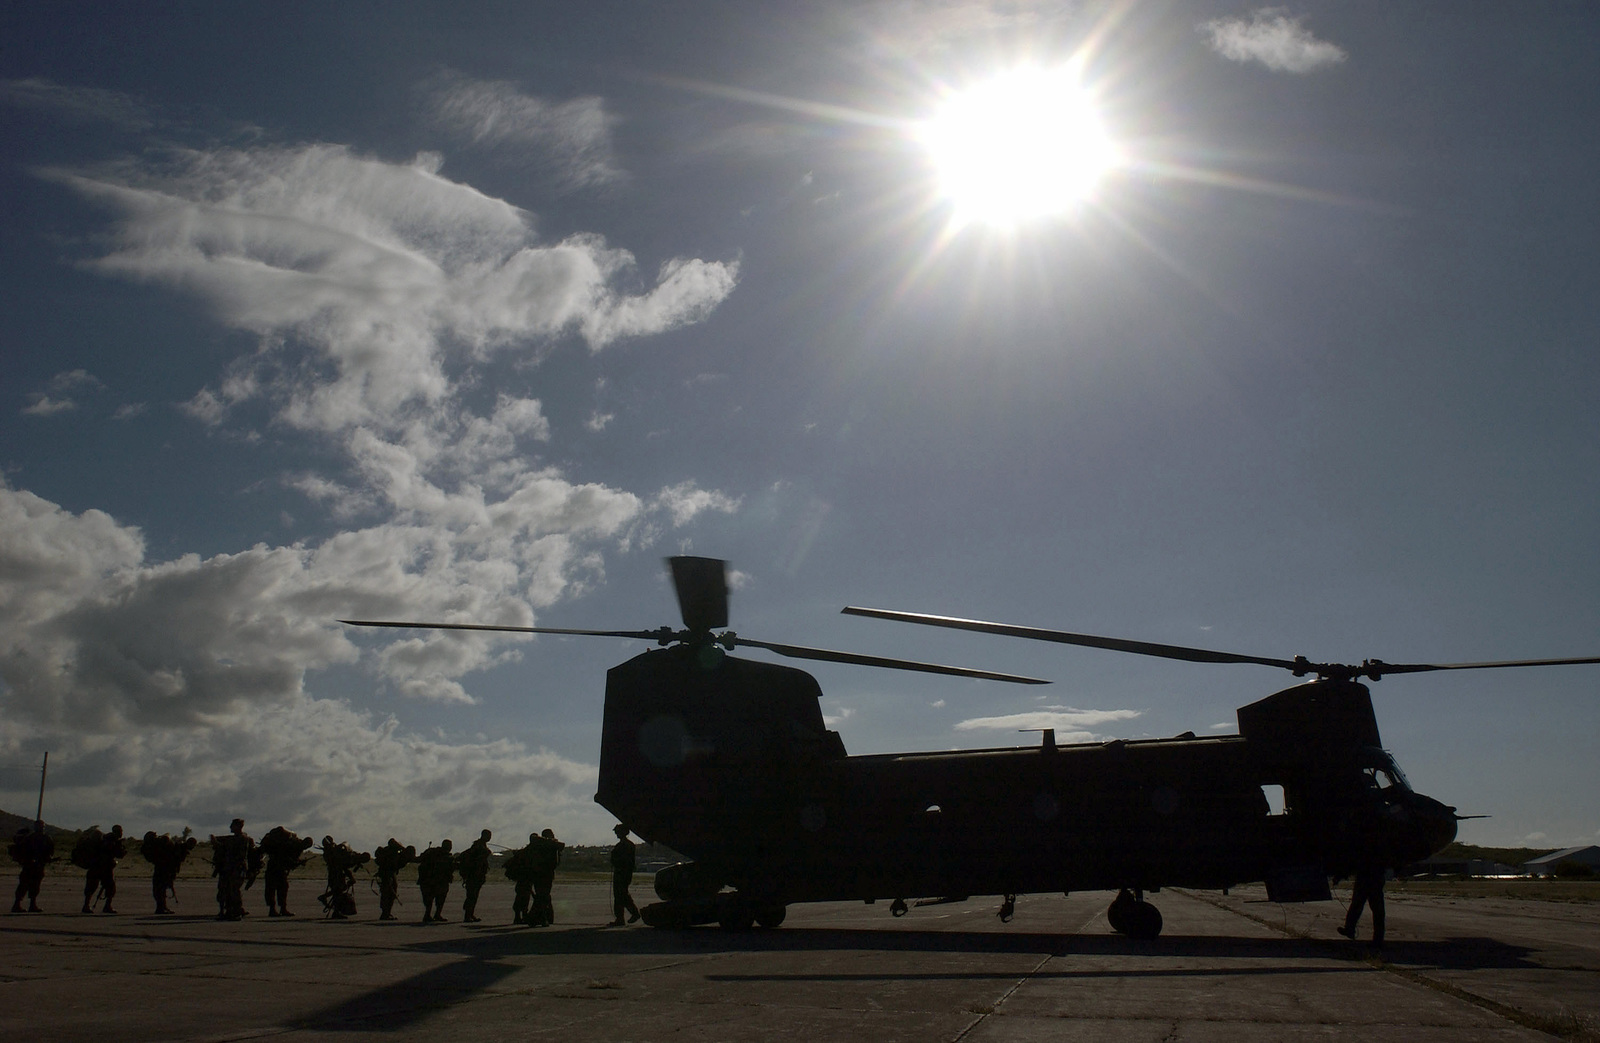 hight resolution of members of the 1st caribbean battalion board a ch 47 chinook helicopter during an airlift to